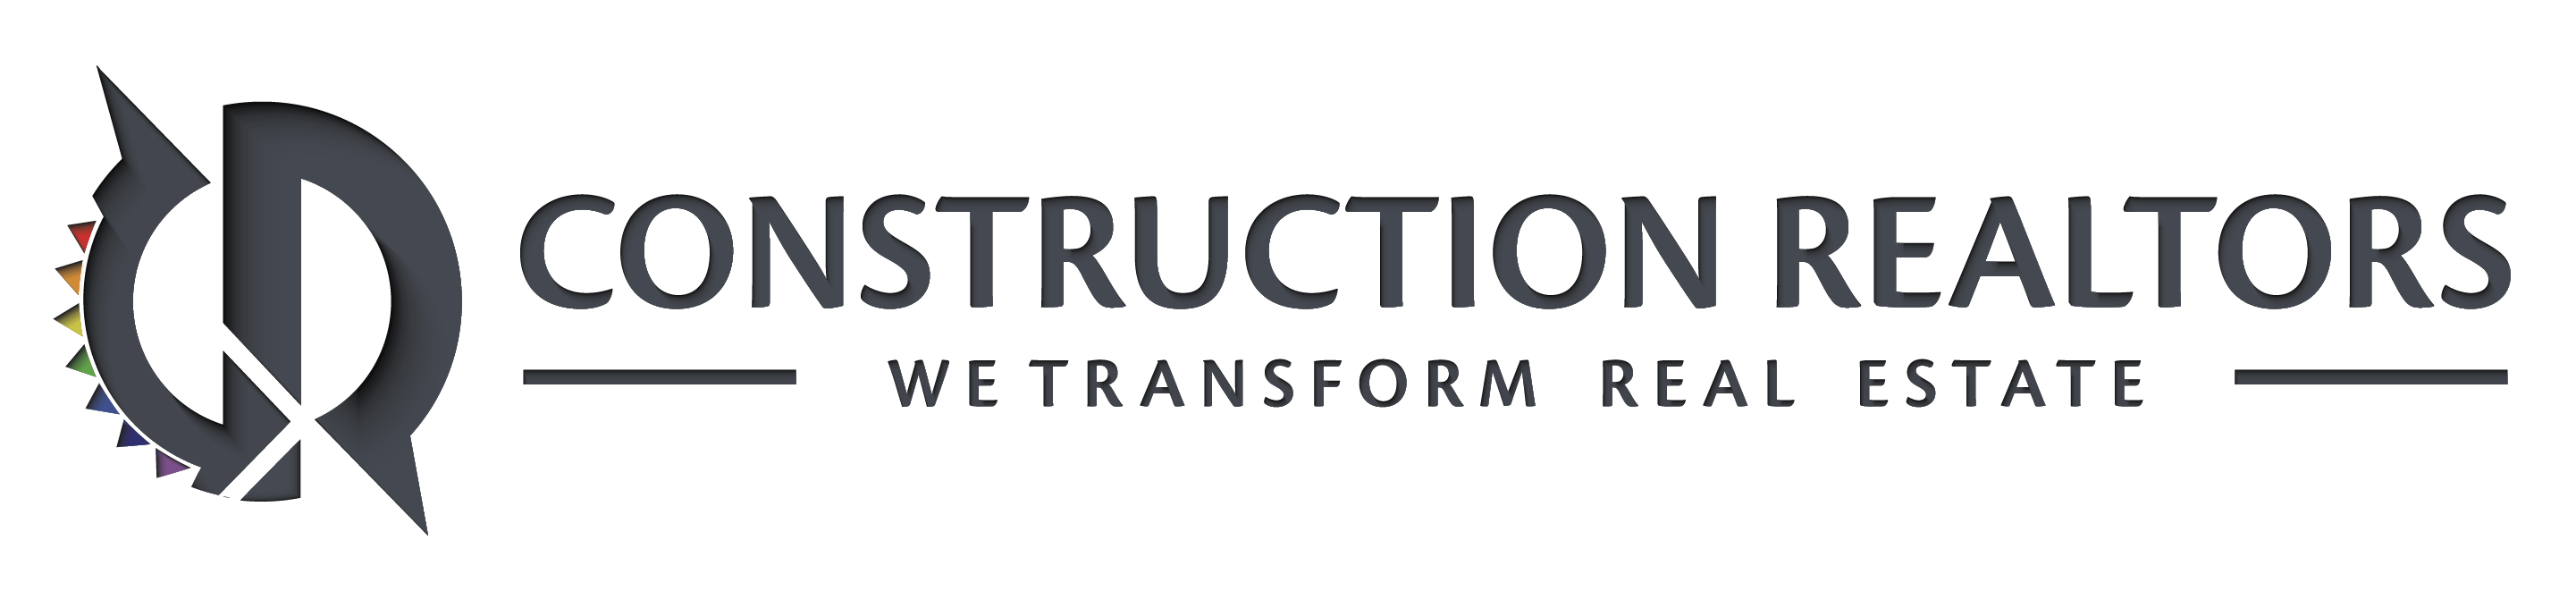 Construction Realtors: We Transform Real Estate